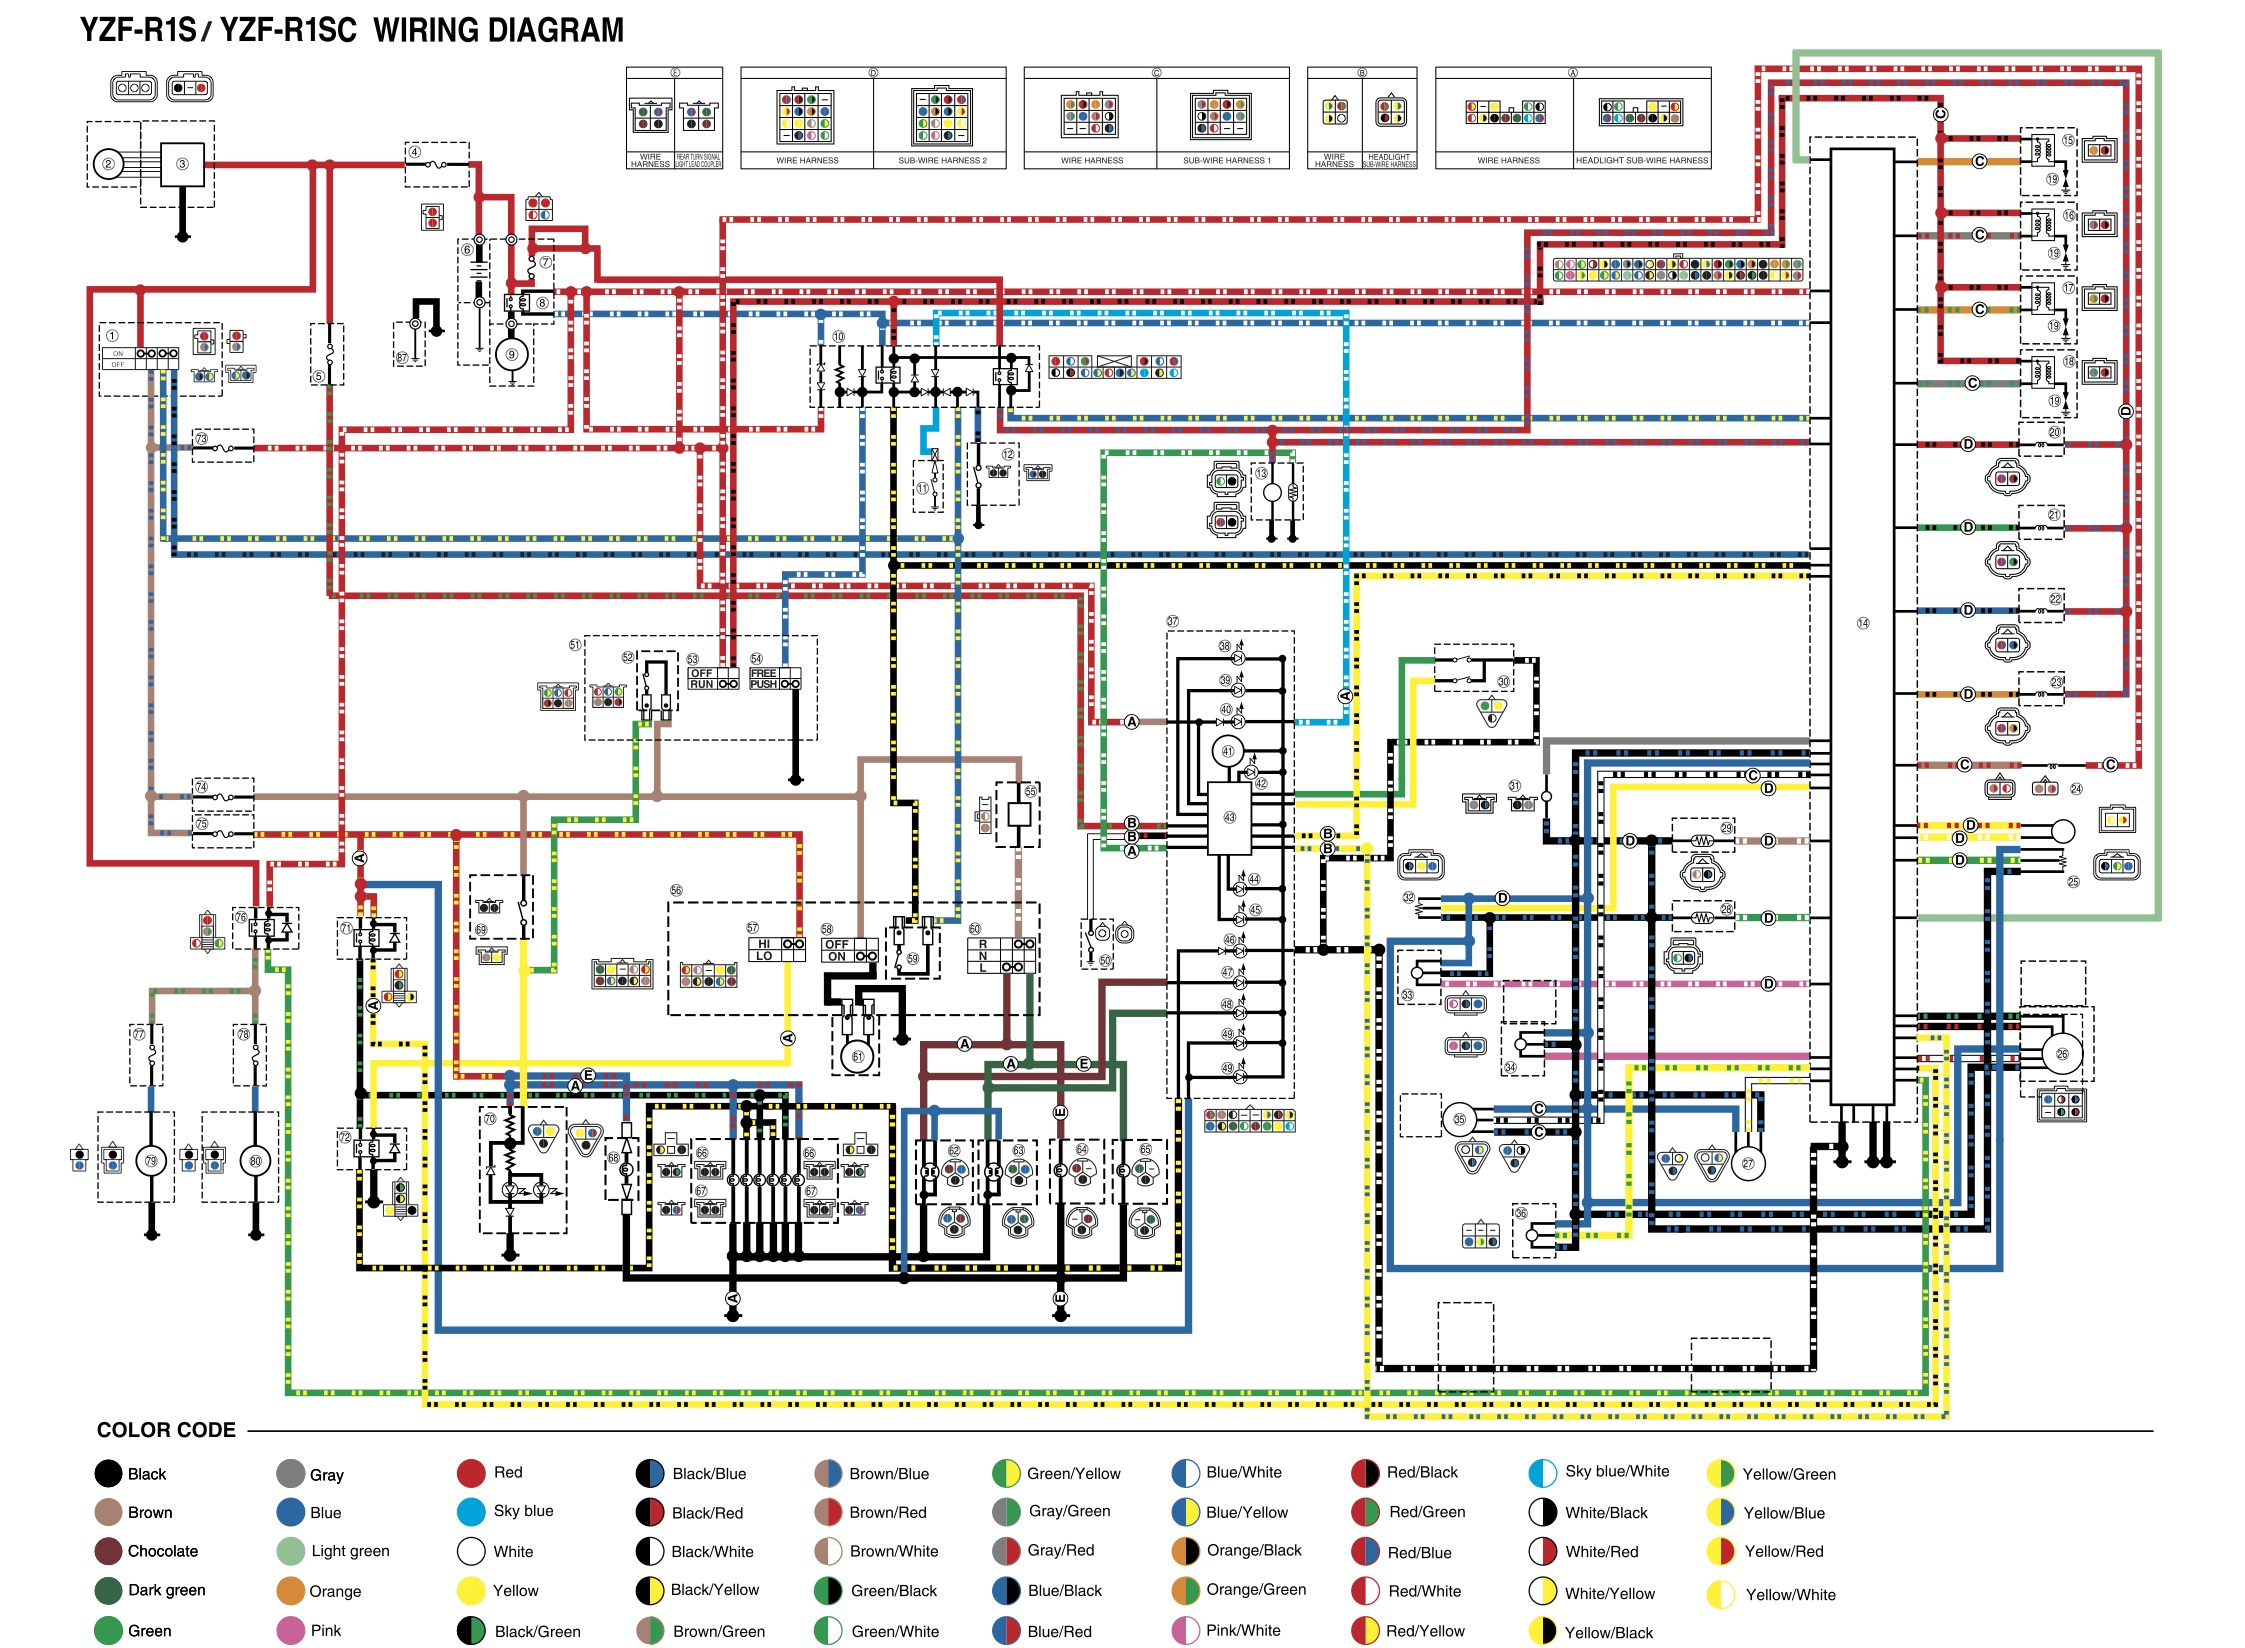 Yamaha Virago 1000cc Wiring Diagram Wiring Diagram Sample Yamaha Raider Wiring  Diagram Yamaha Virago 1100 Wiring Diagram